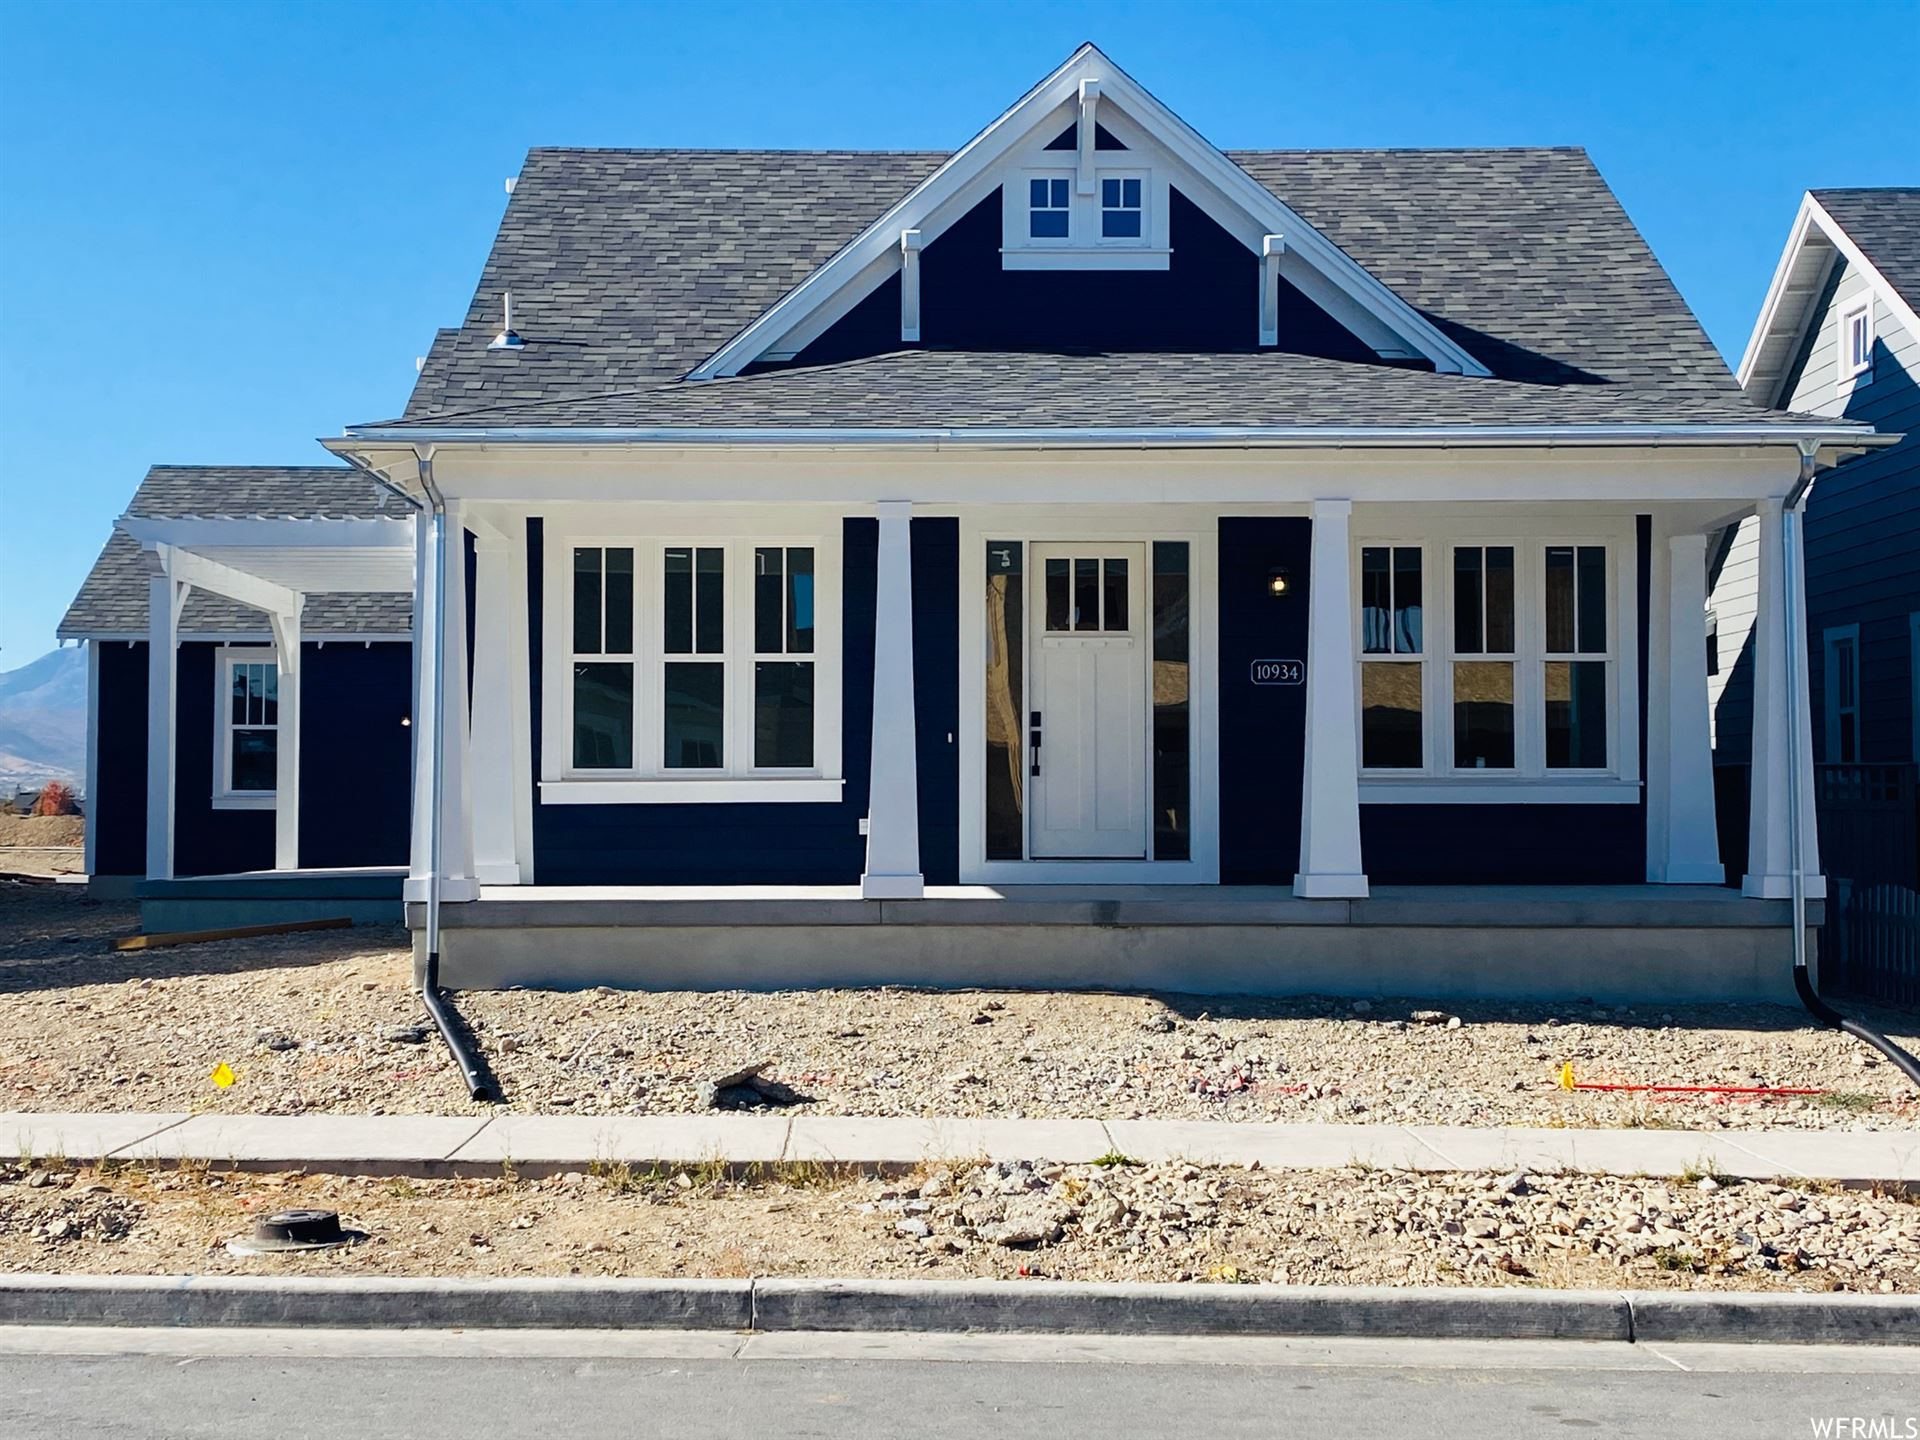 Photo of 11018 S PADDLE BOARD WAY #325, South Jordan, UT 84009 (MLS # 1710989)